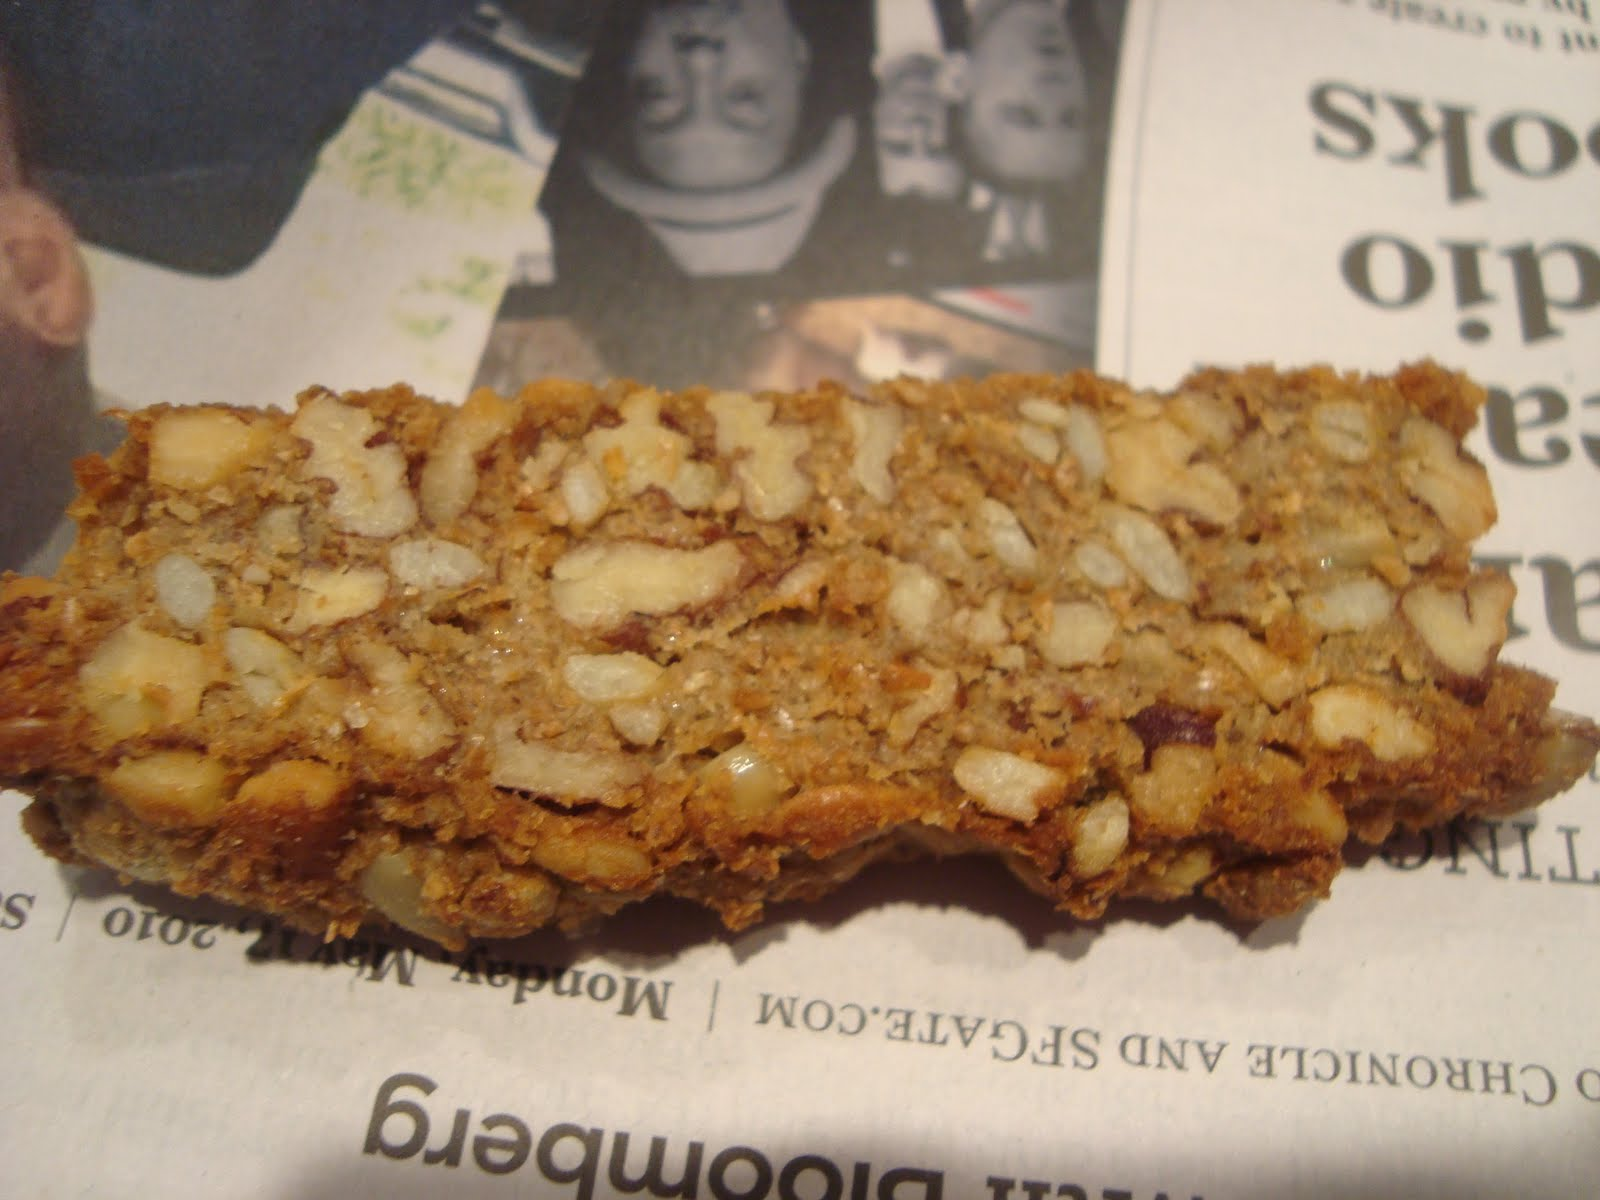 hungry like the wolf: pecan and sunflower seed biscotti